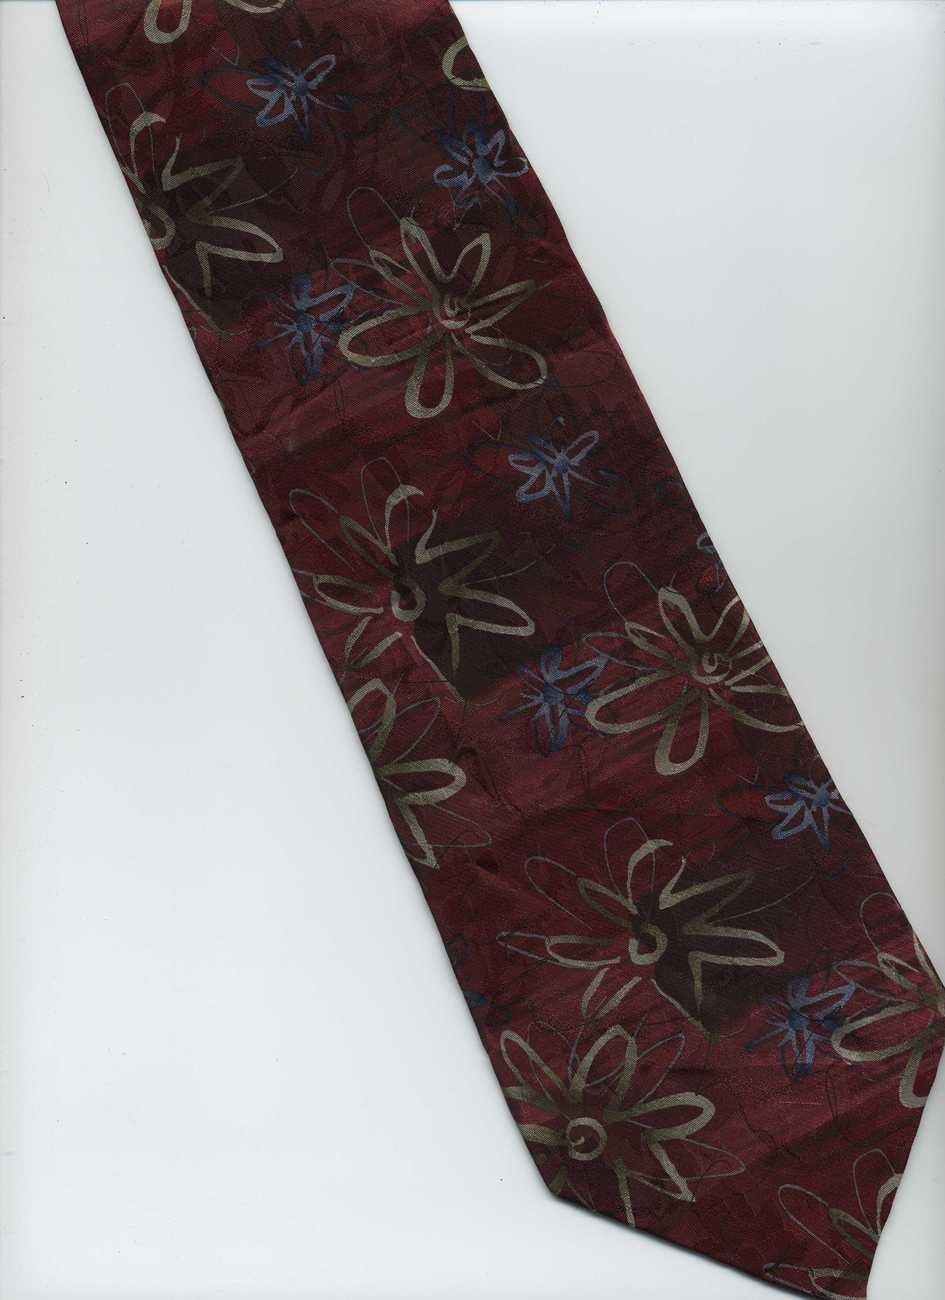 J. GARCIA Tie ~ Banyan Trees 14 ~ Red, Maroon, Tan, Blue ~ Abstract Floral Silk